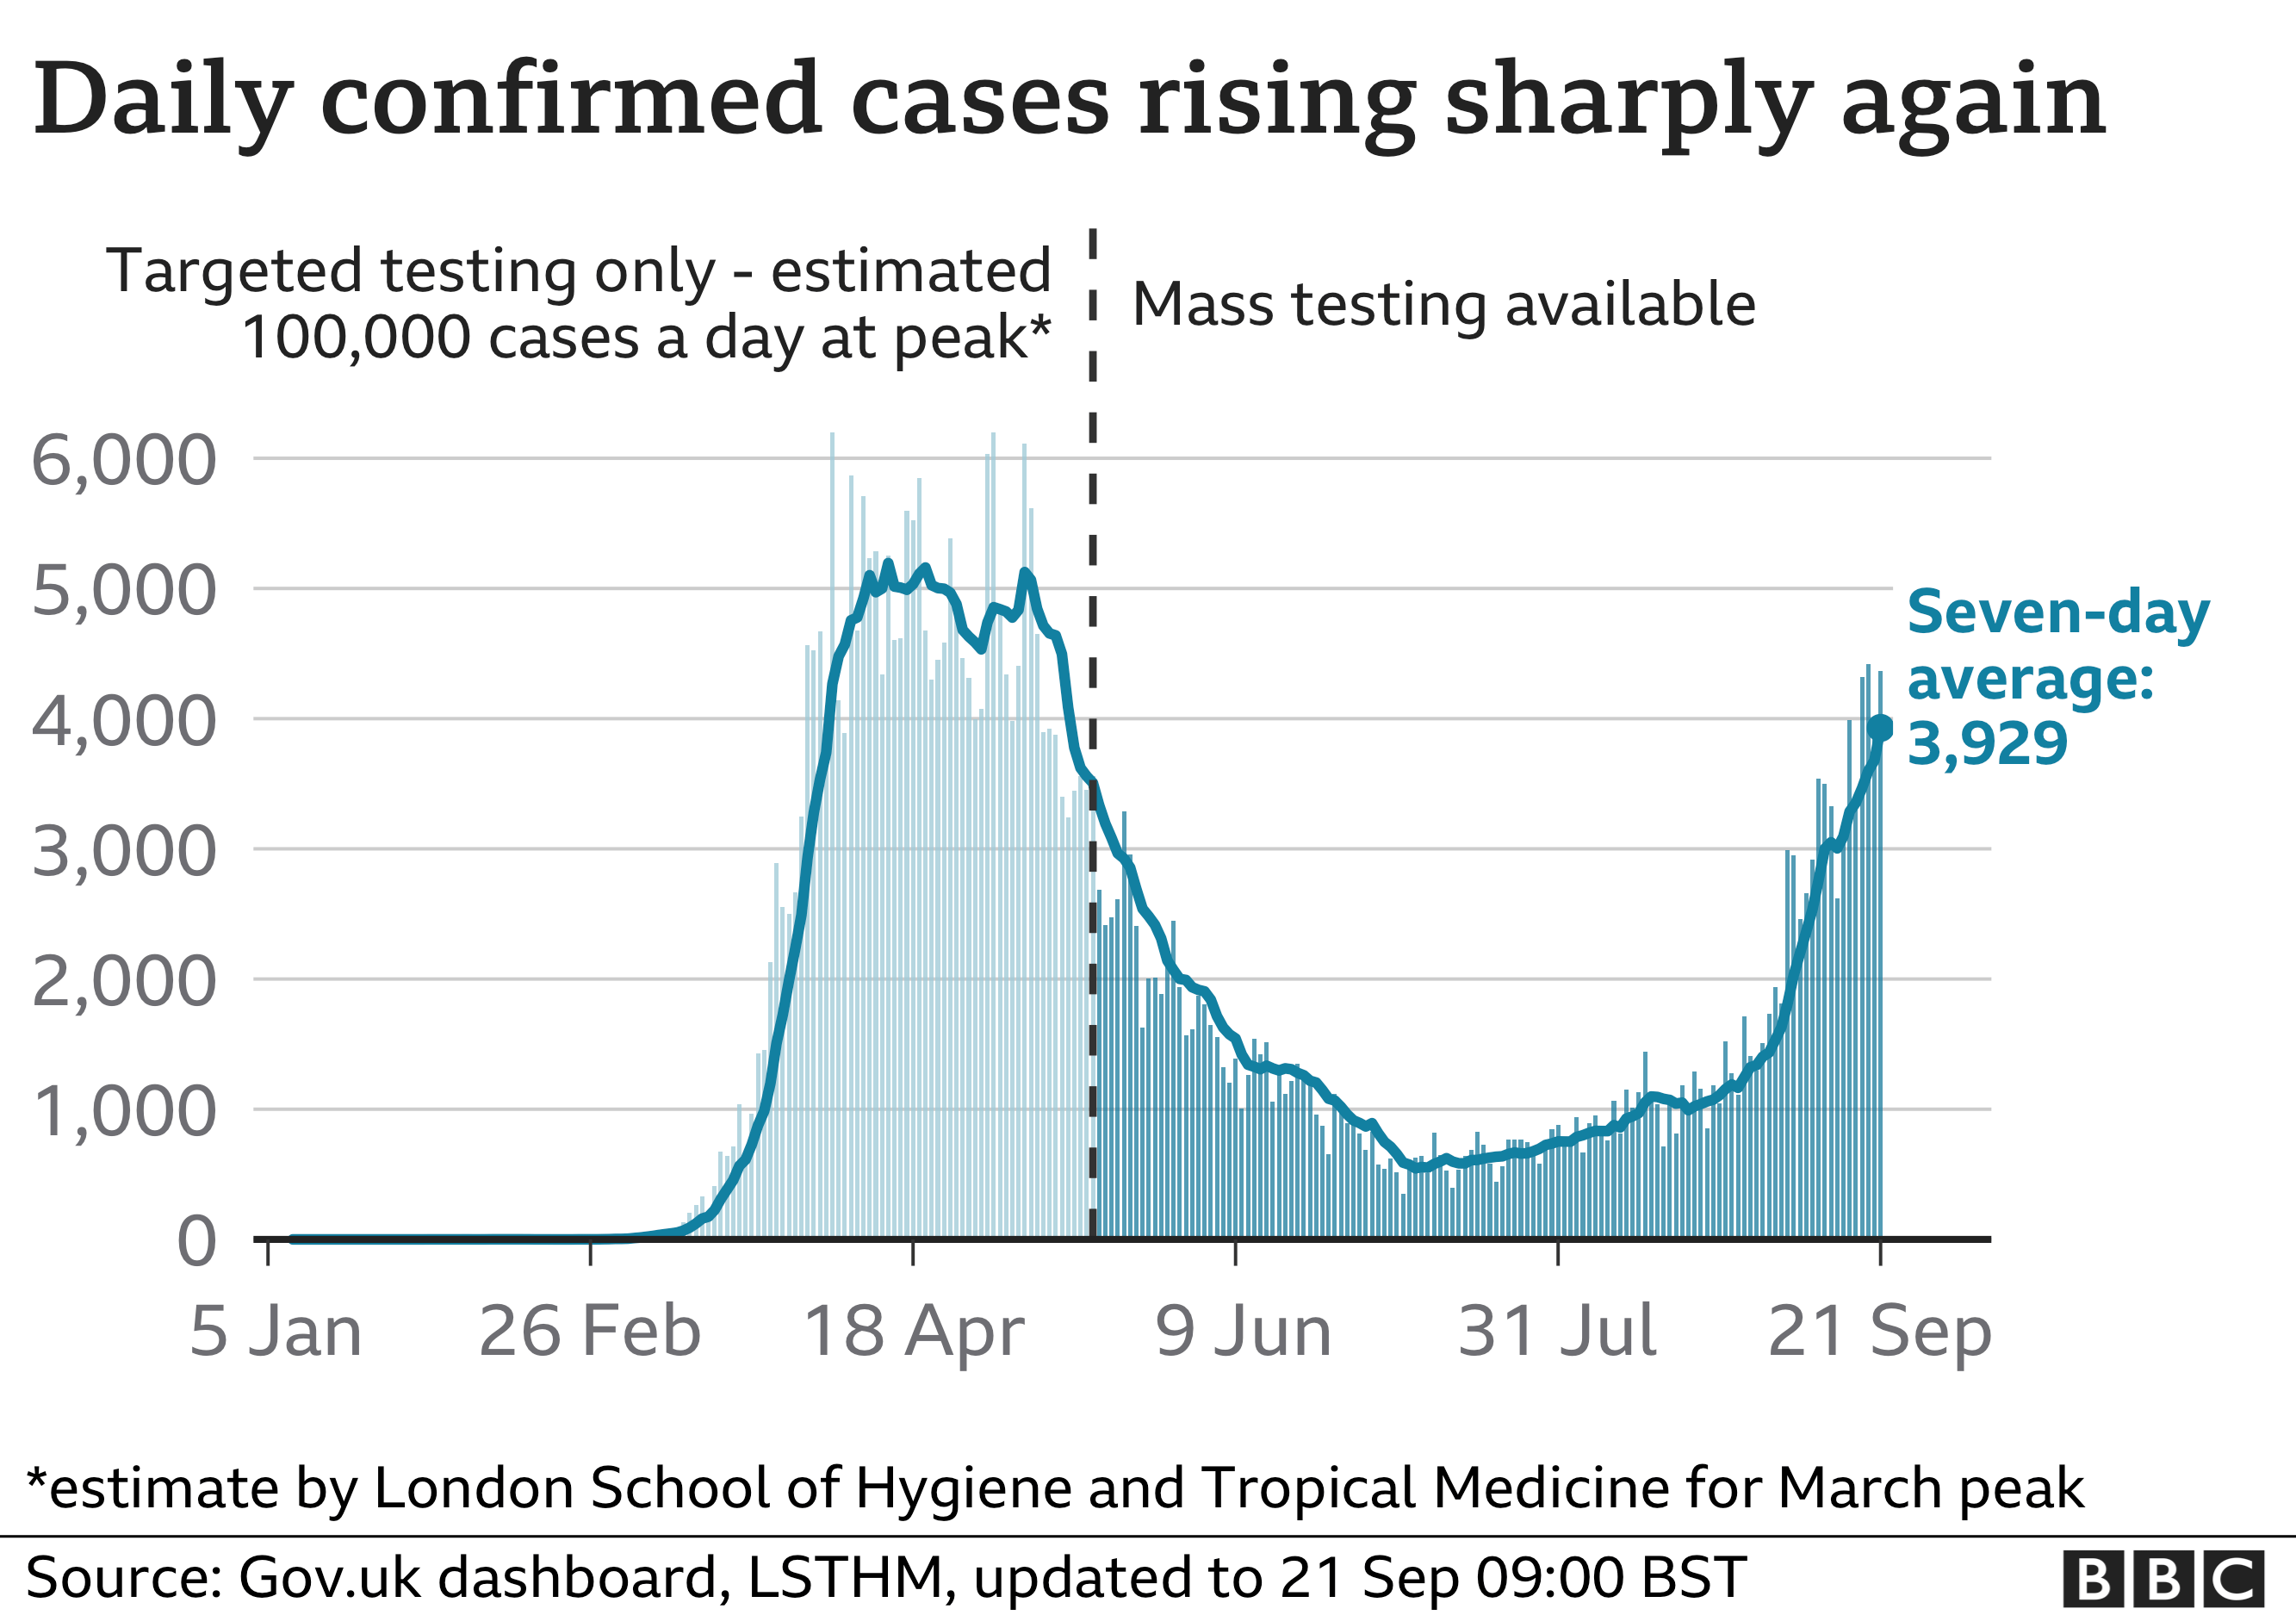 Daily confirmed cases in the UK